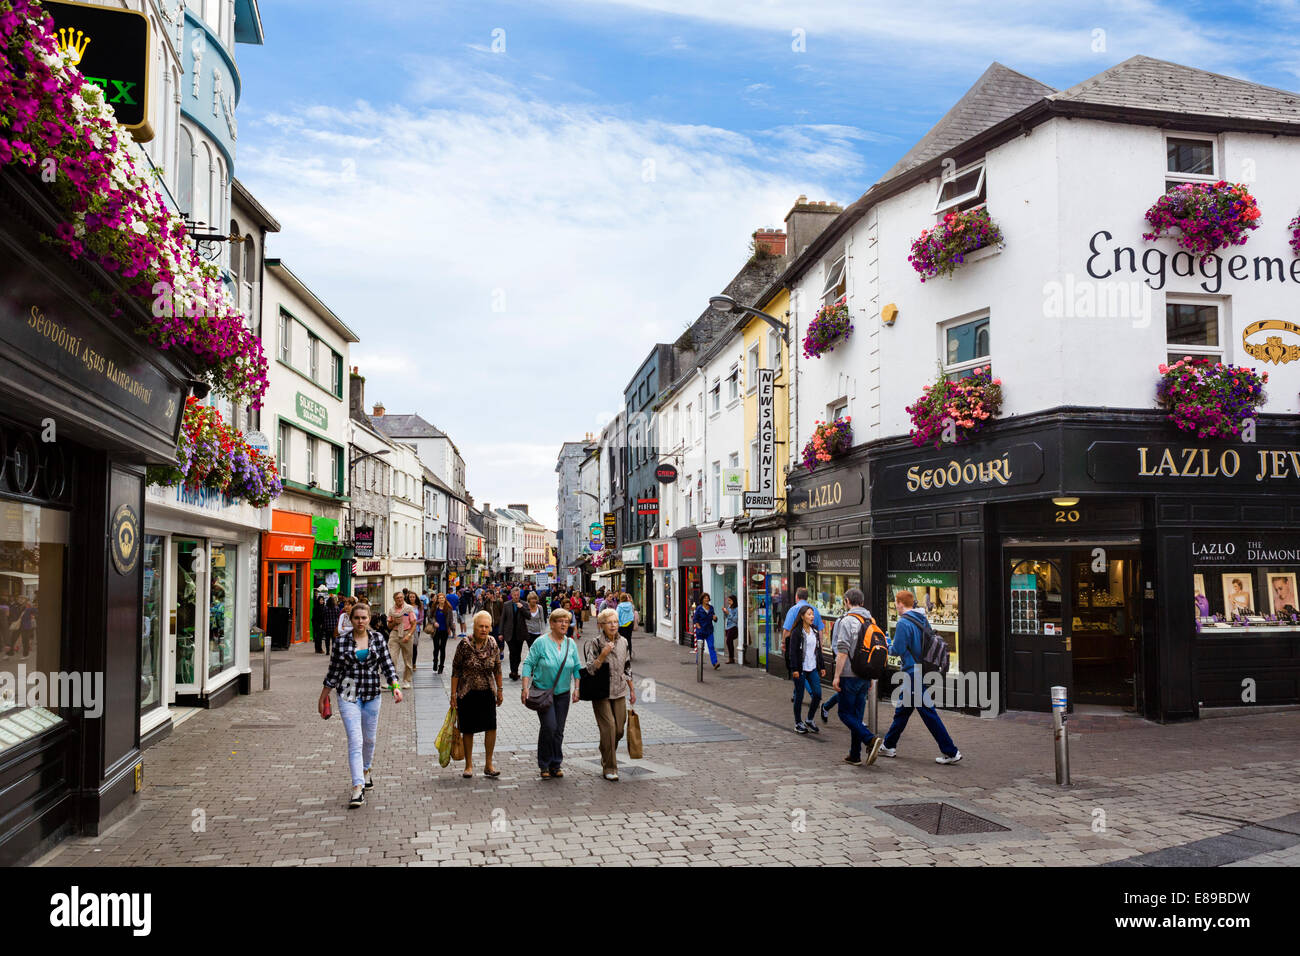 William Street in Galway City Latin Quarter, County Galway, Republic of Ireland - Stock Image